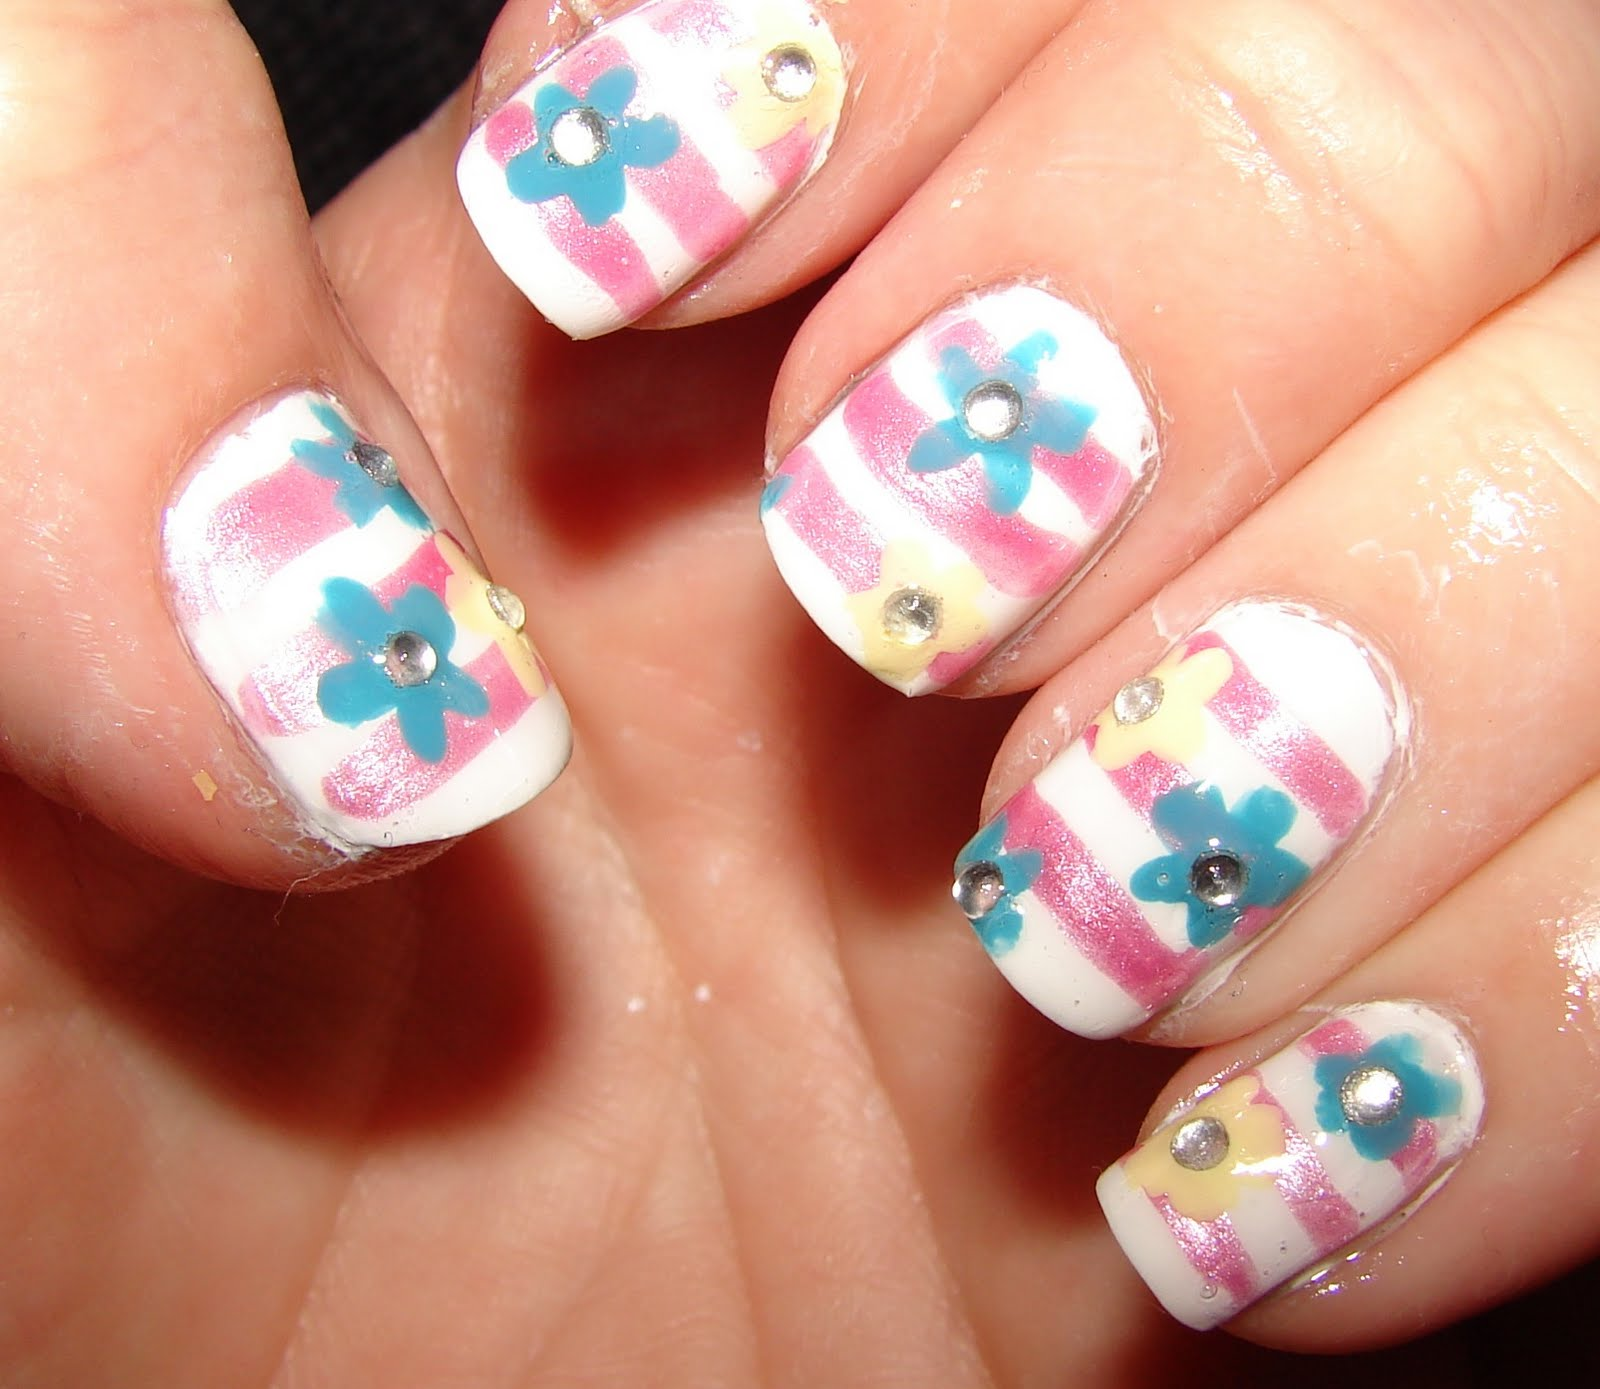 26 Impossible Japanese Nail Art Designs